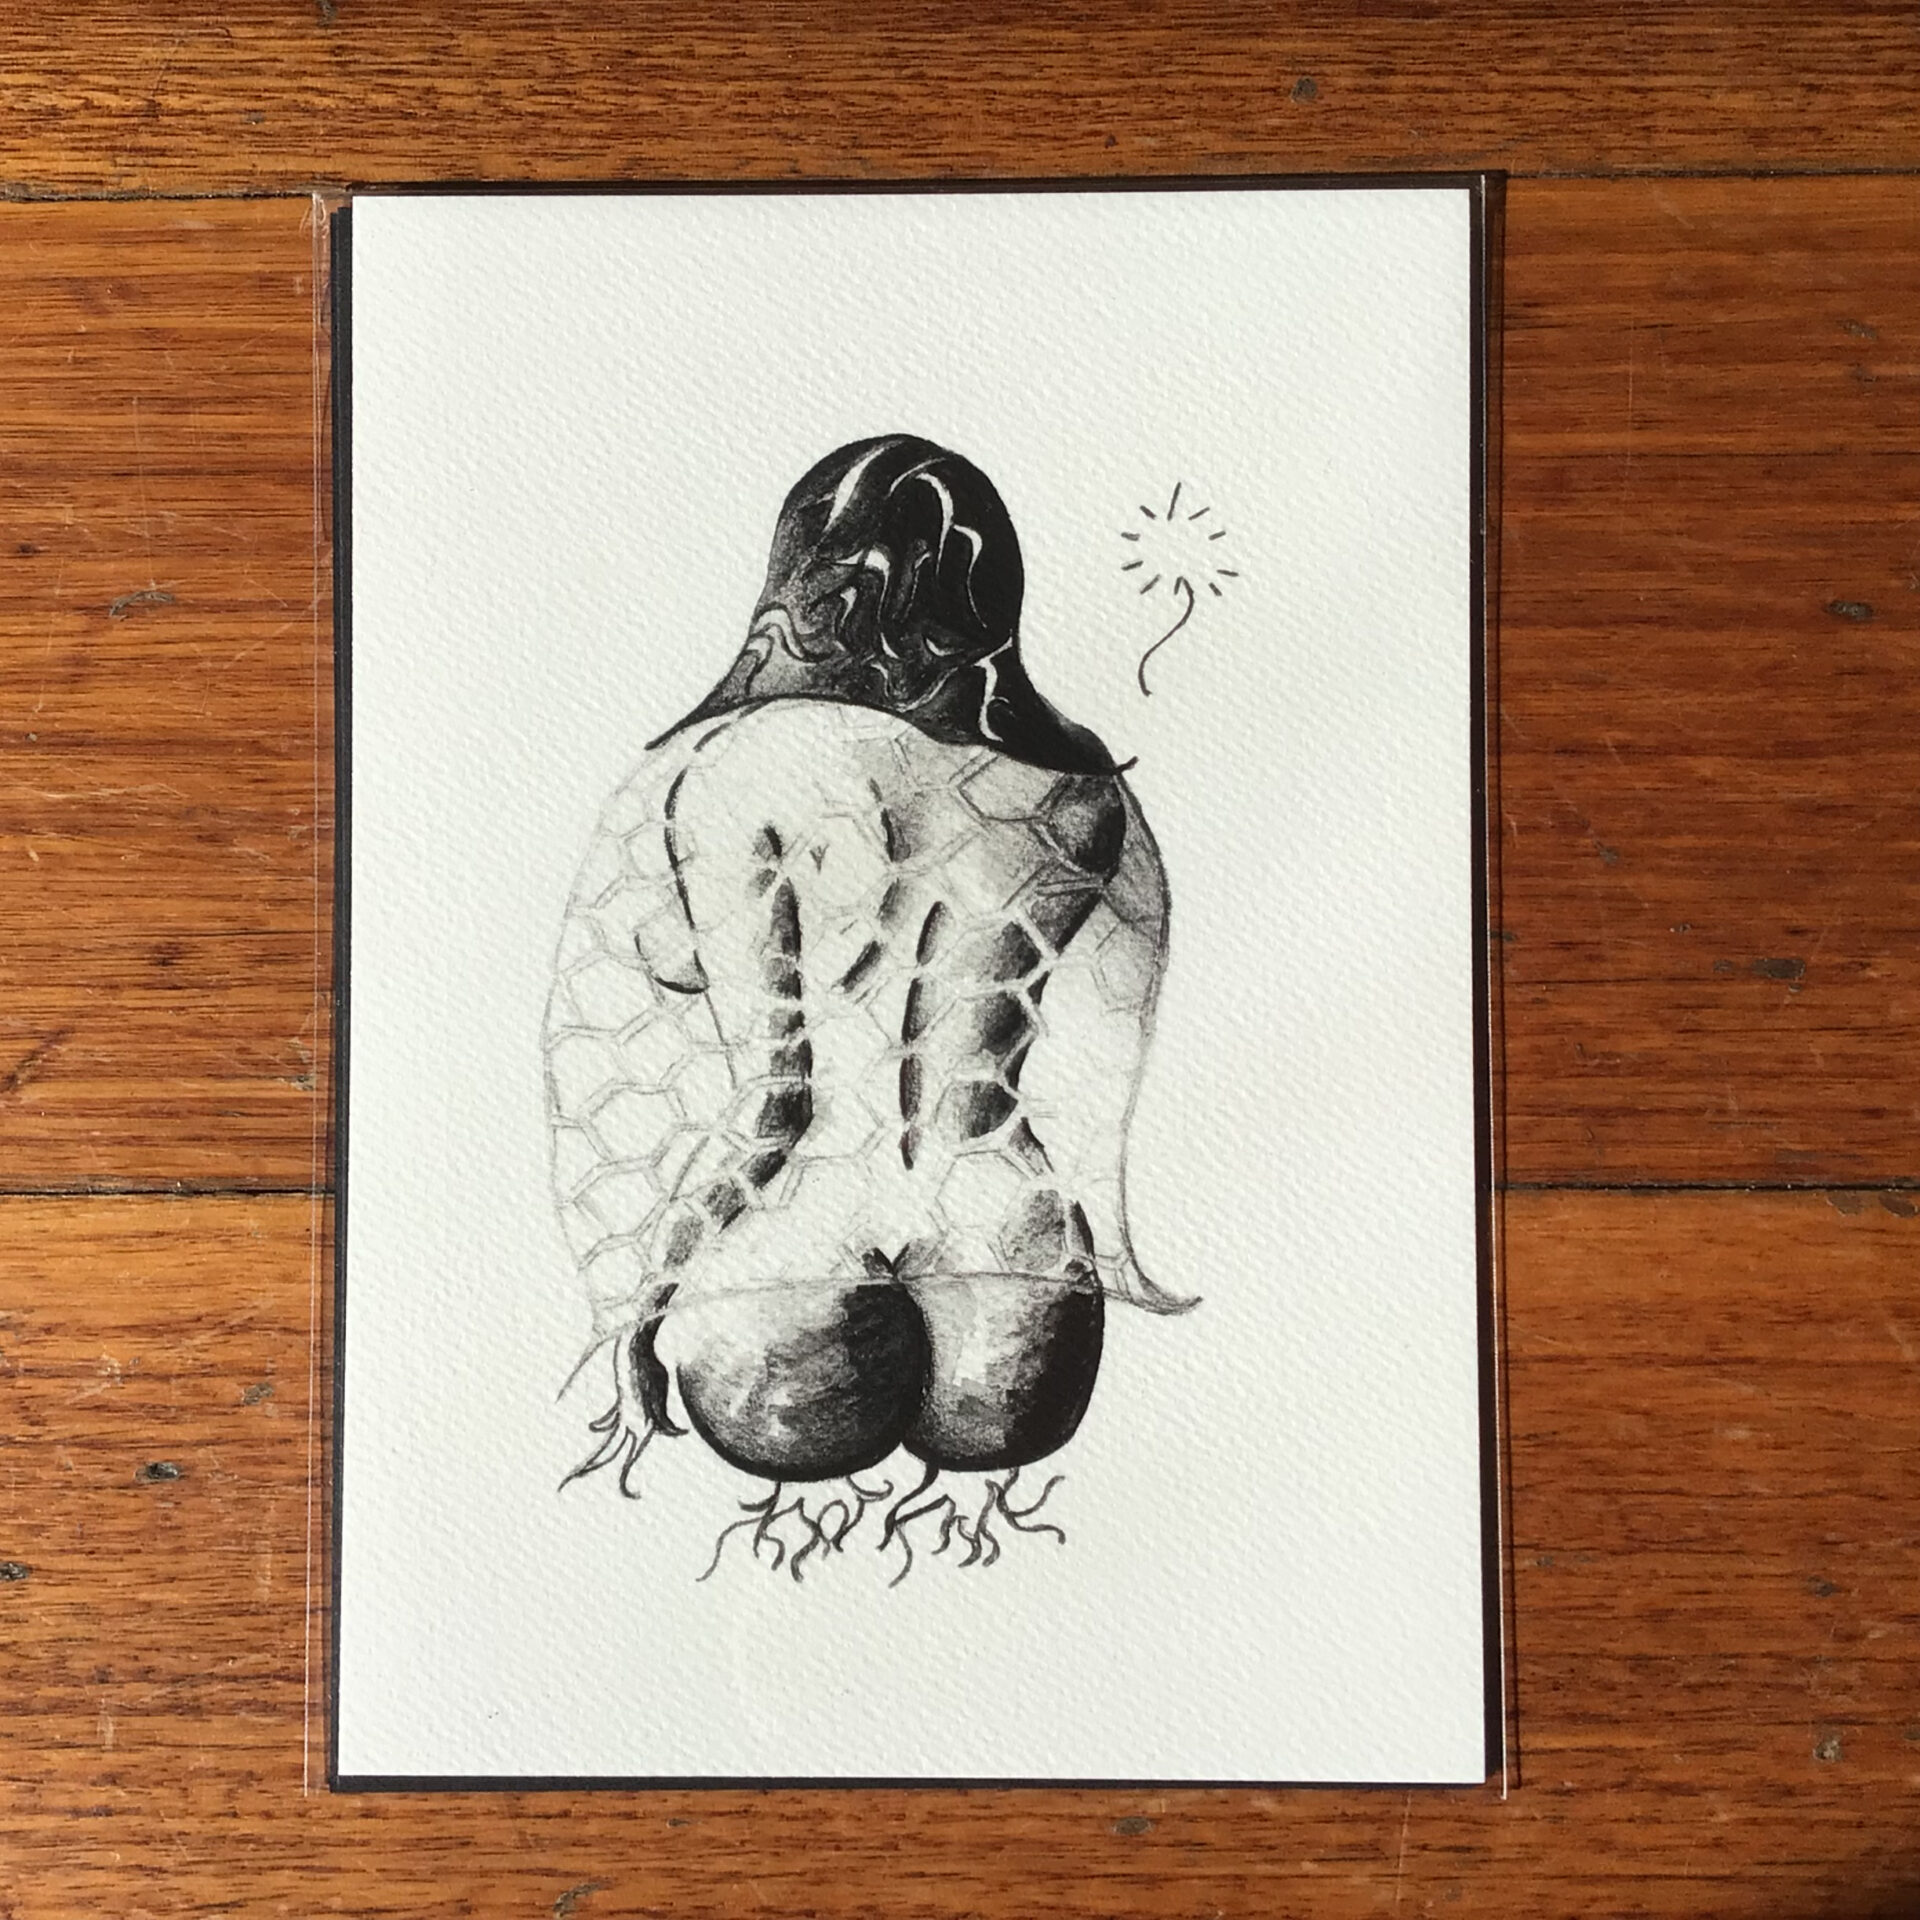 'Veiled Lady', A5 Fine Art Print by Inktacled inktacled (Fitzroy)